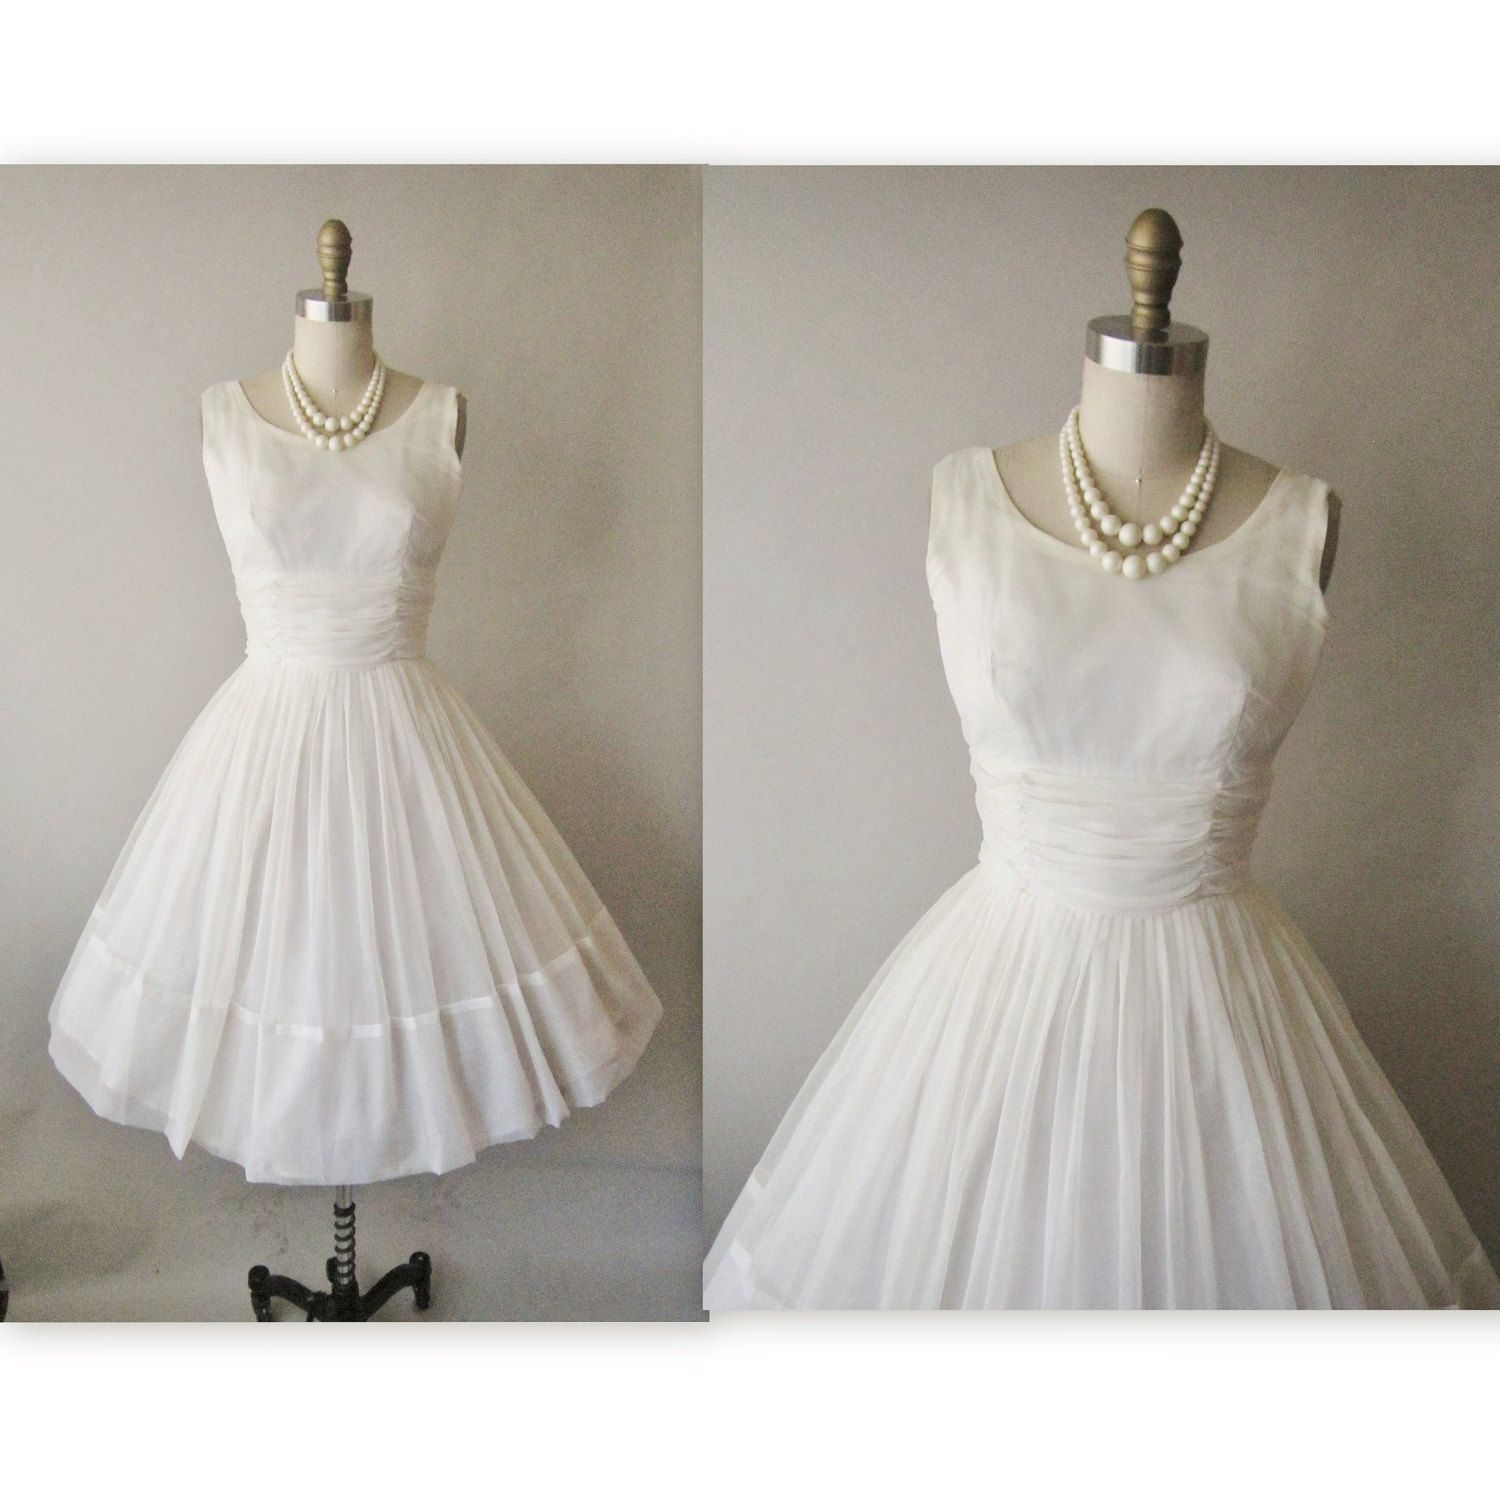 Vintage1950s Chiffon Tea Length Wedding Dress